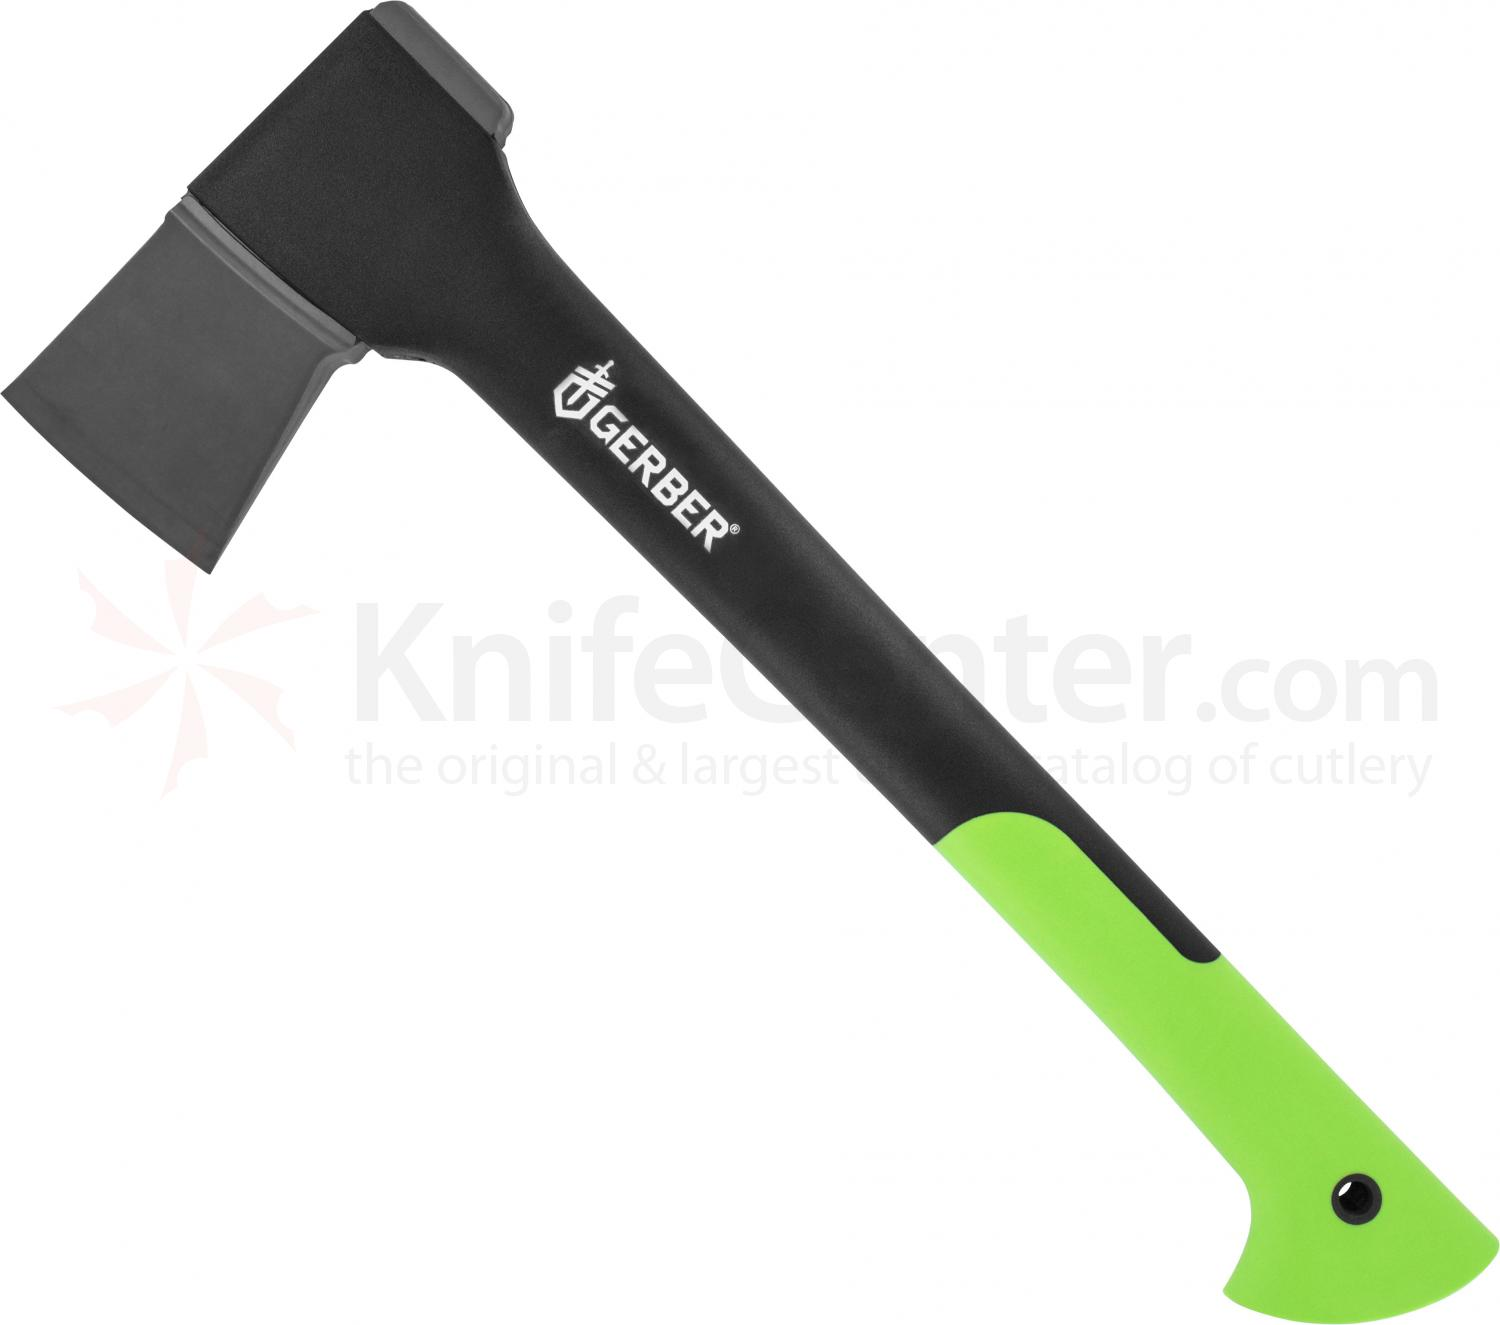 Gerber Freescape Hatchet 3.125 inch Forged Steel Head, Nylon Handle, 17.5 inch Overall